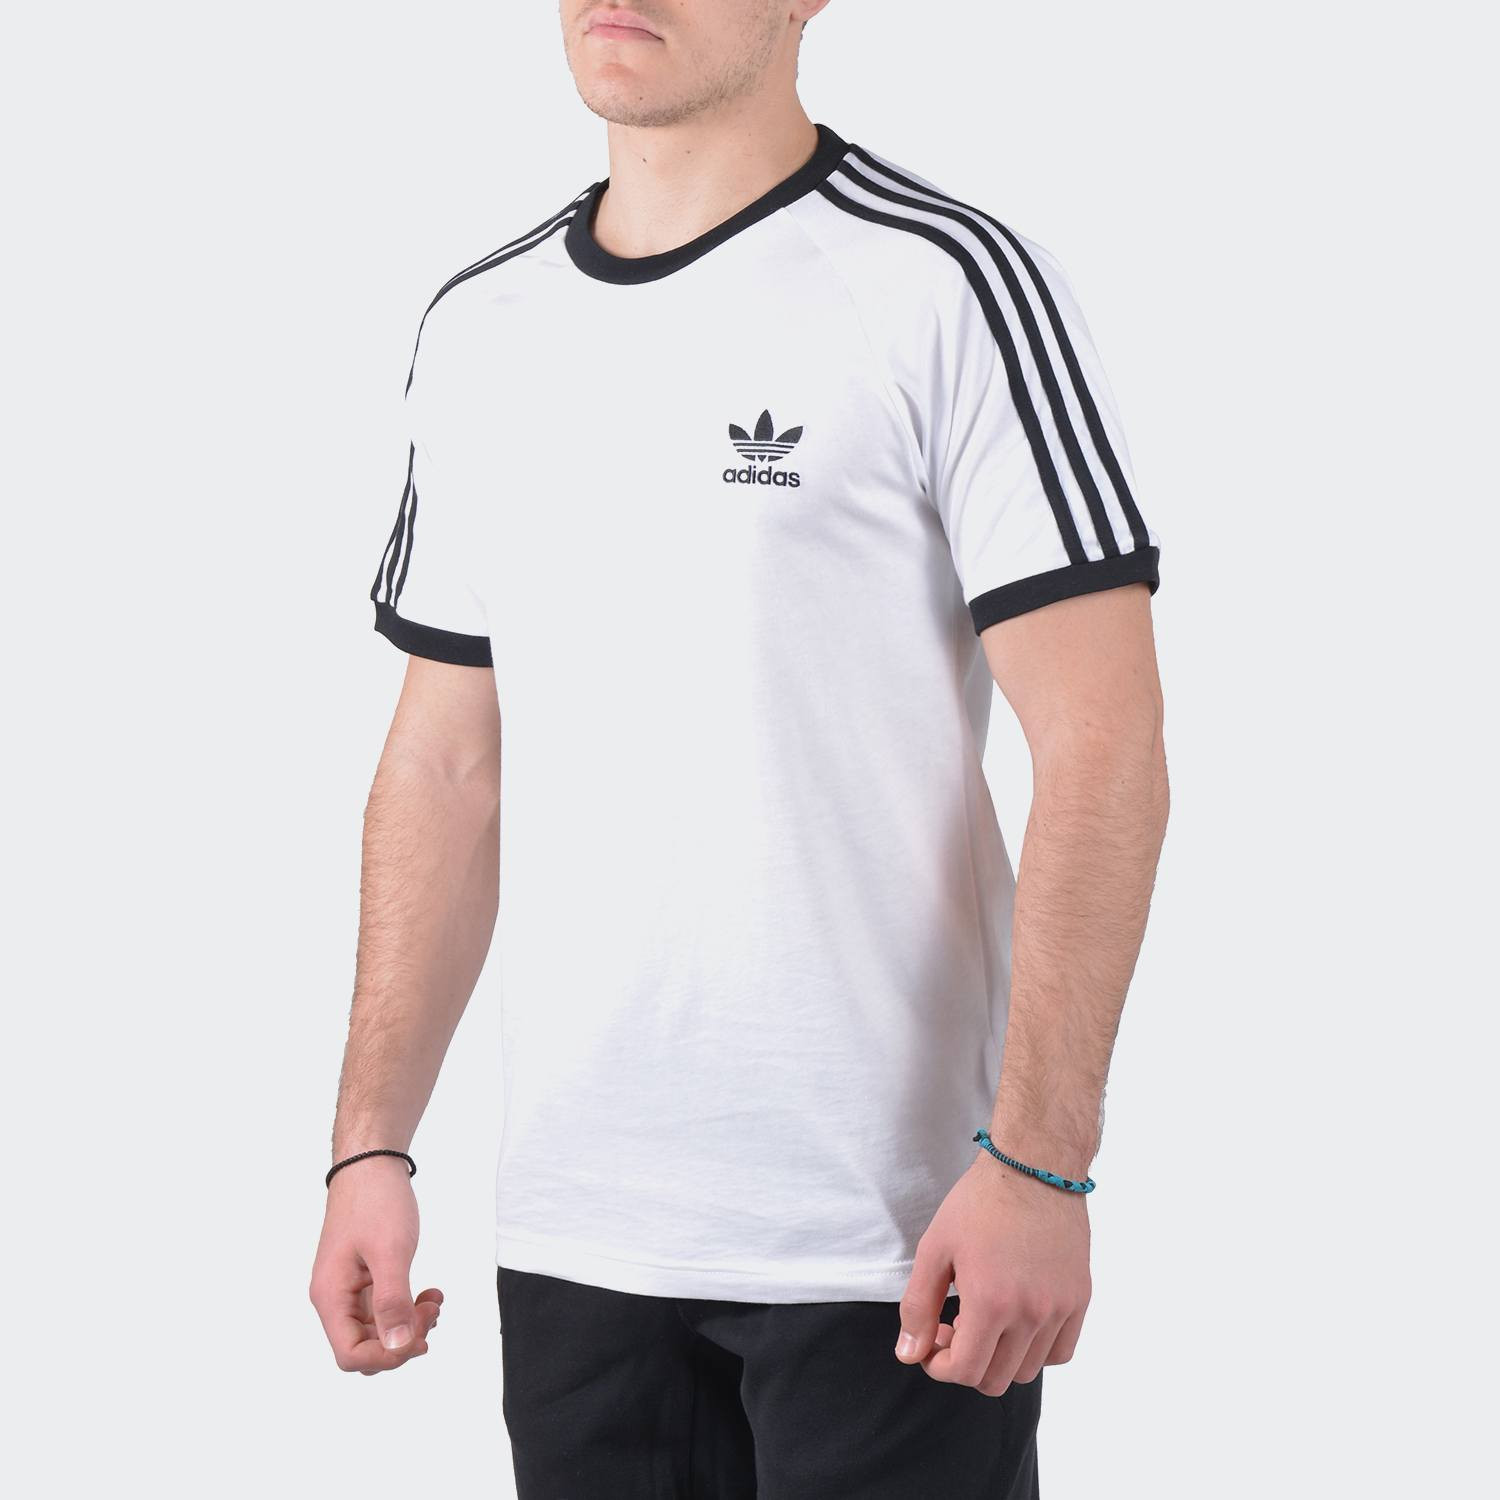 adidas Original 3-Stripes - Ανδρικό T-shirt (9000001711_1539)